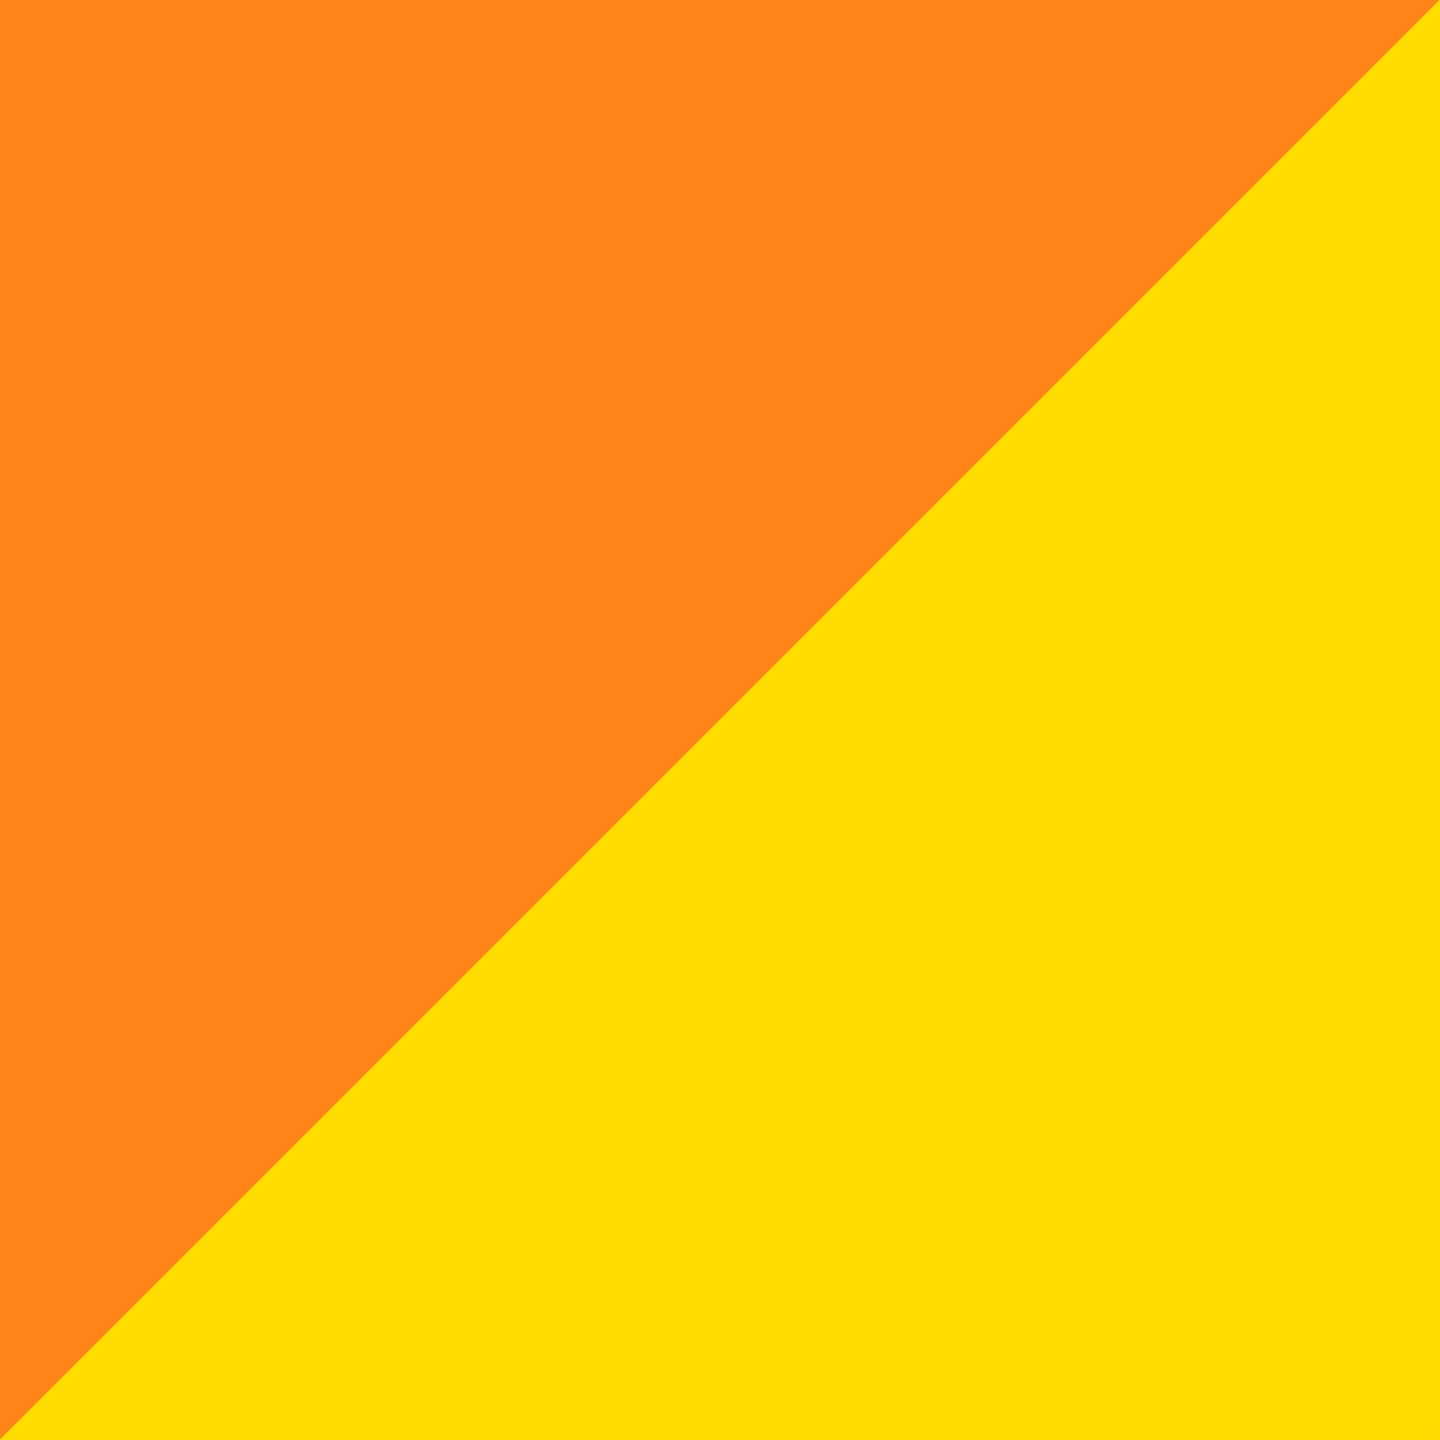 Orange / Yellow